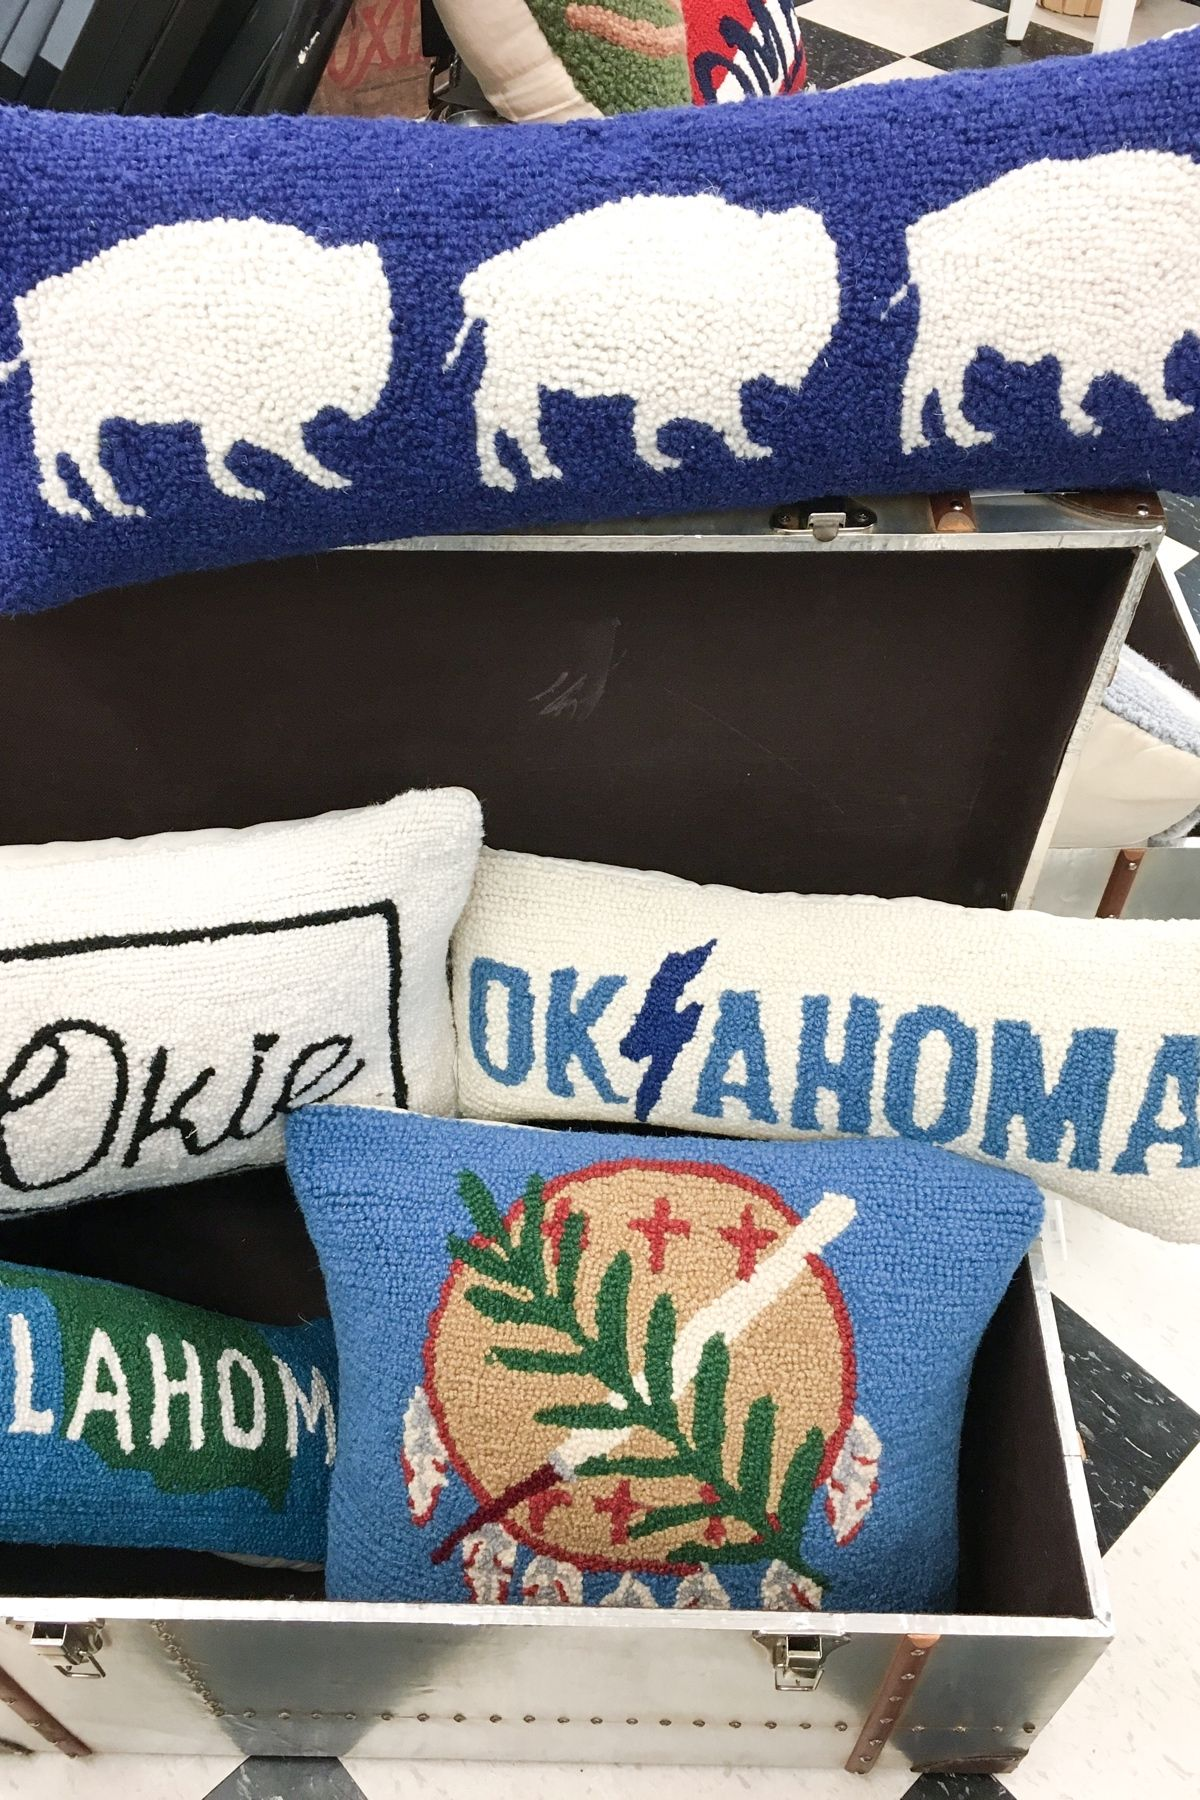 New Oklahoma pillows have arrived! If you don't see it on